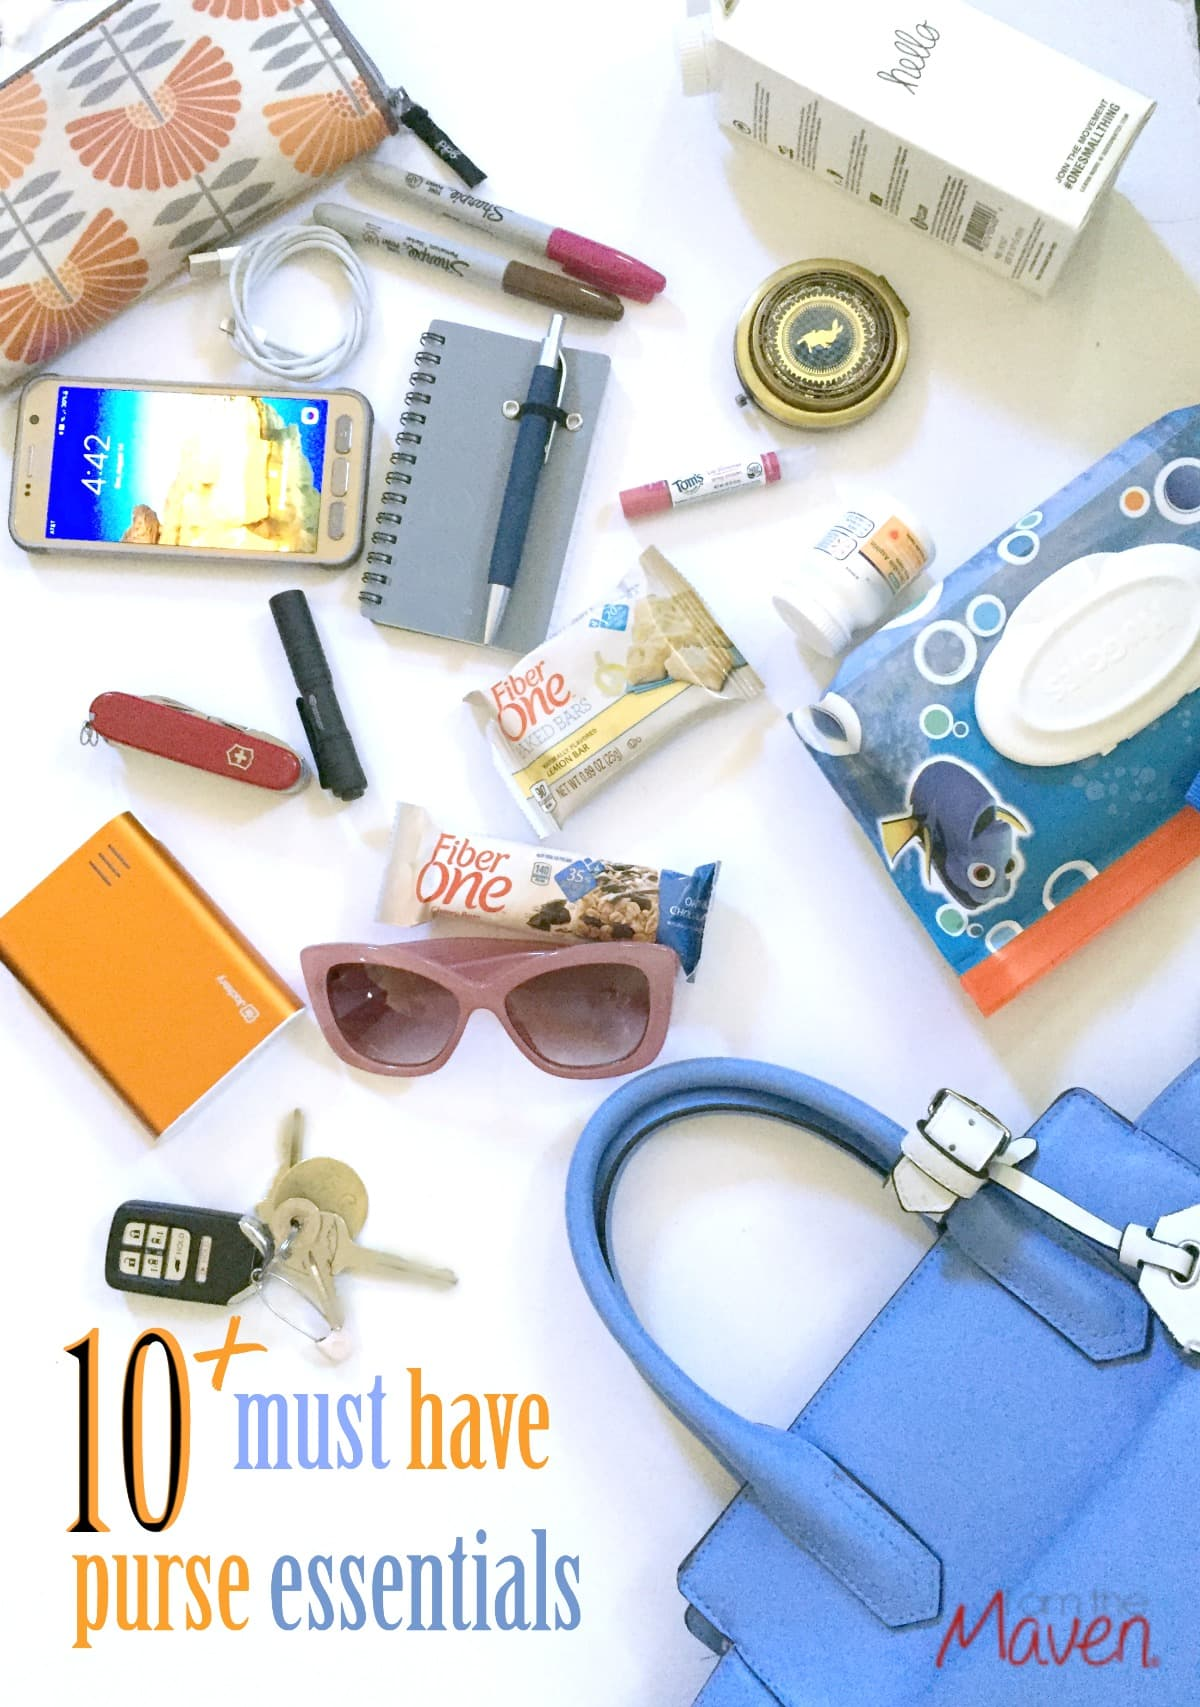 I still have a decent amount of kid and mom must have purse essentials to tackle the day.  I know it sounds like a lot, but really it isn't once you get it all in there.